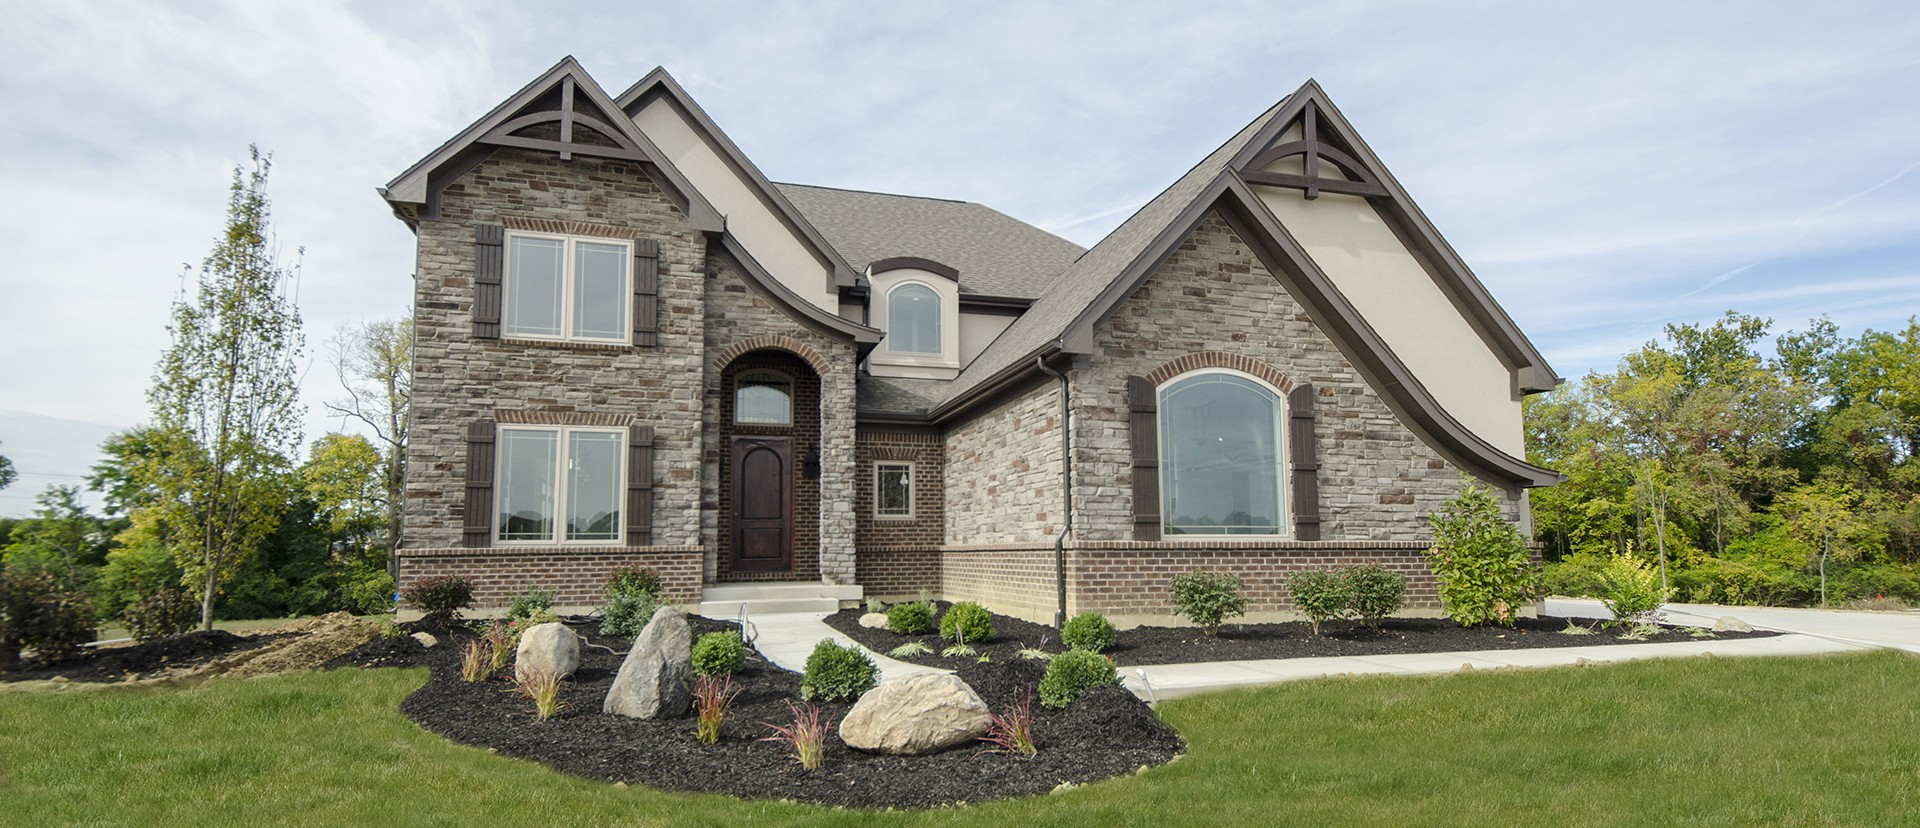 The Reese's custom exterior by Design Homes.